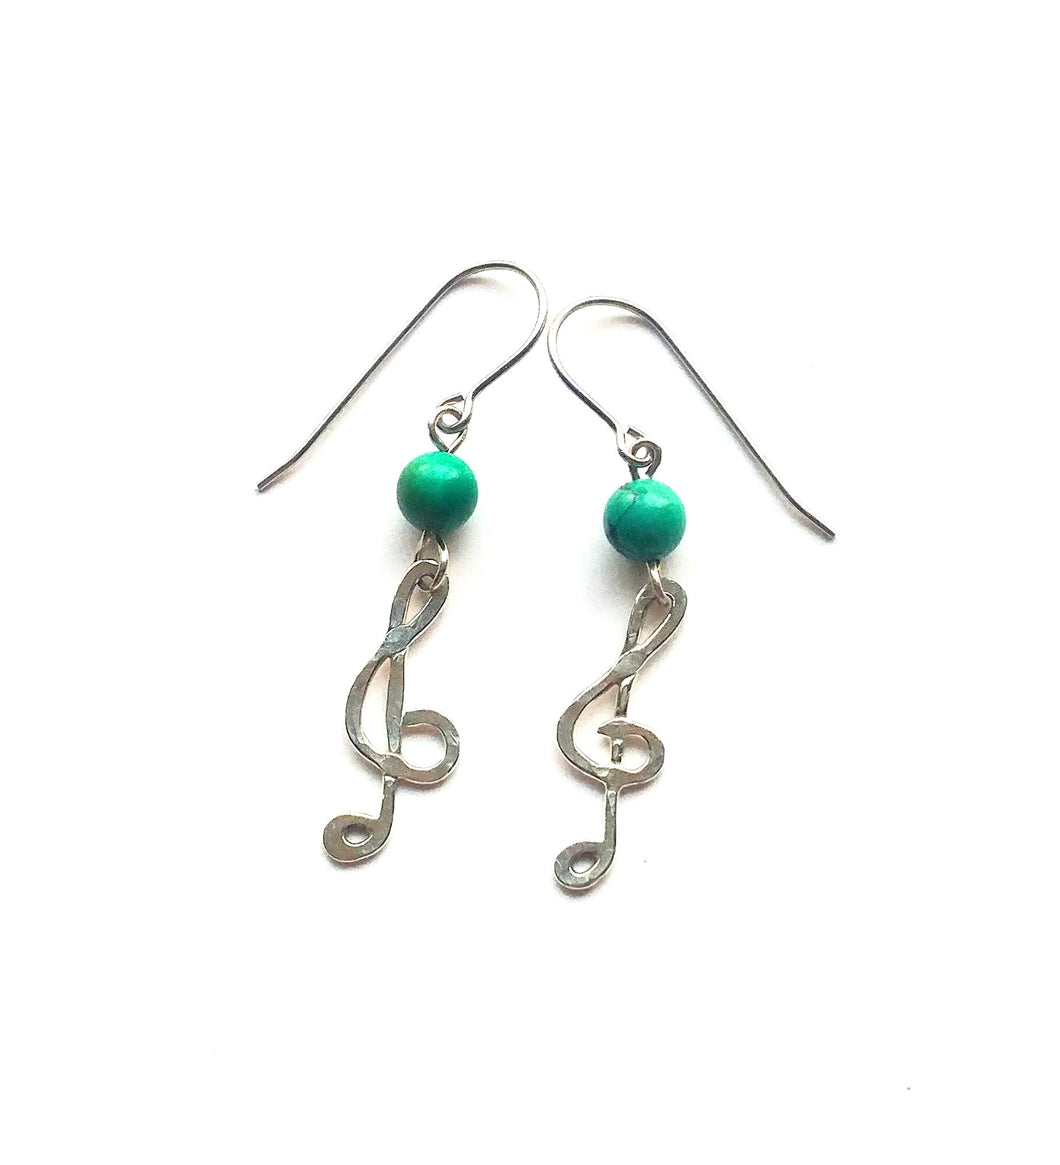 Turquoise and sterling silver treble clef earrings